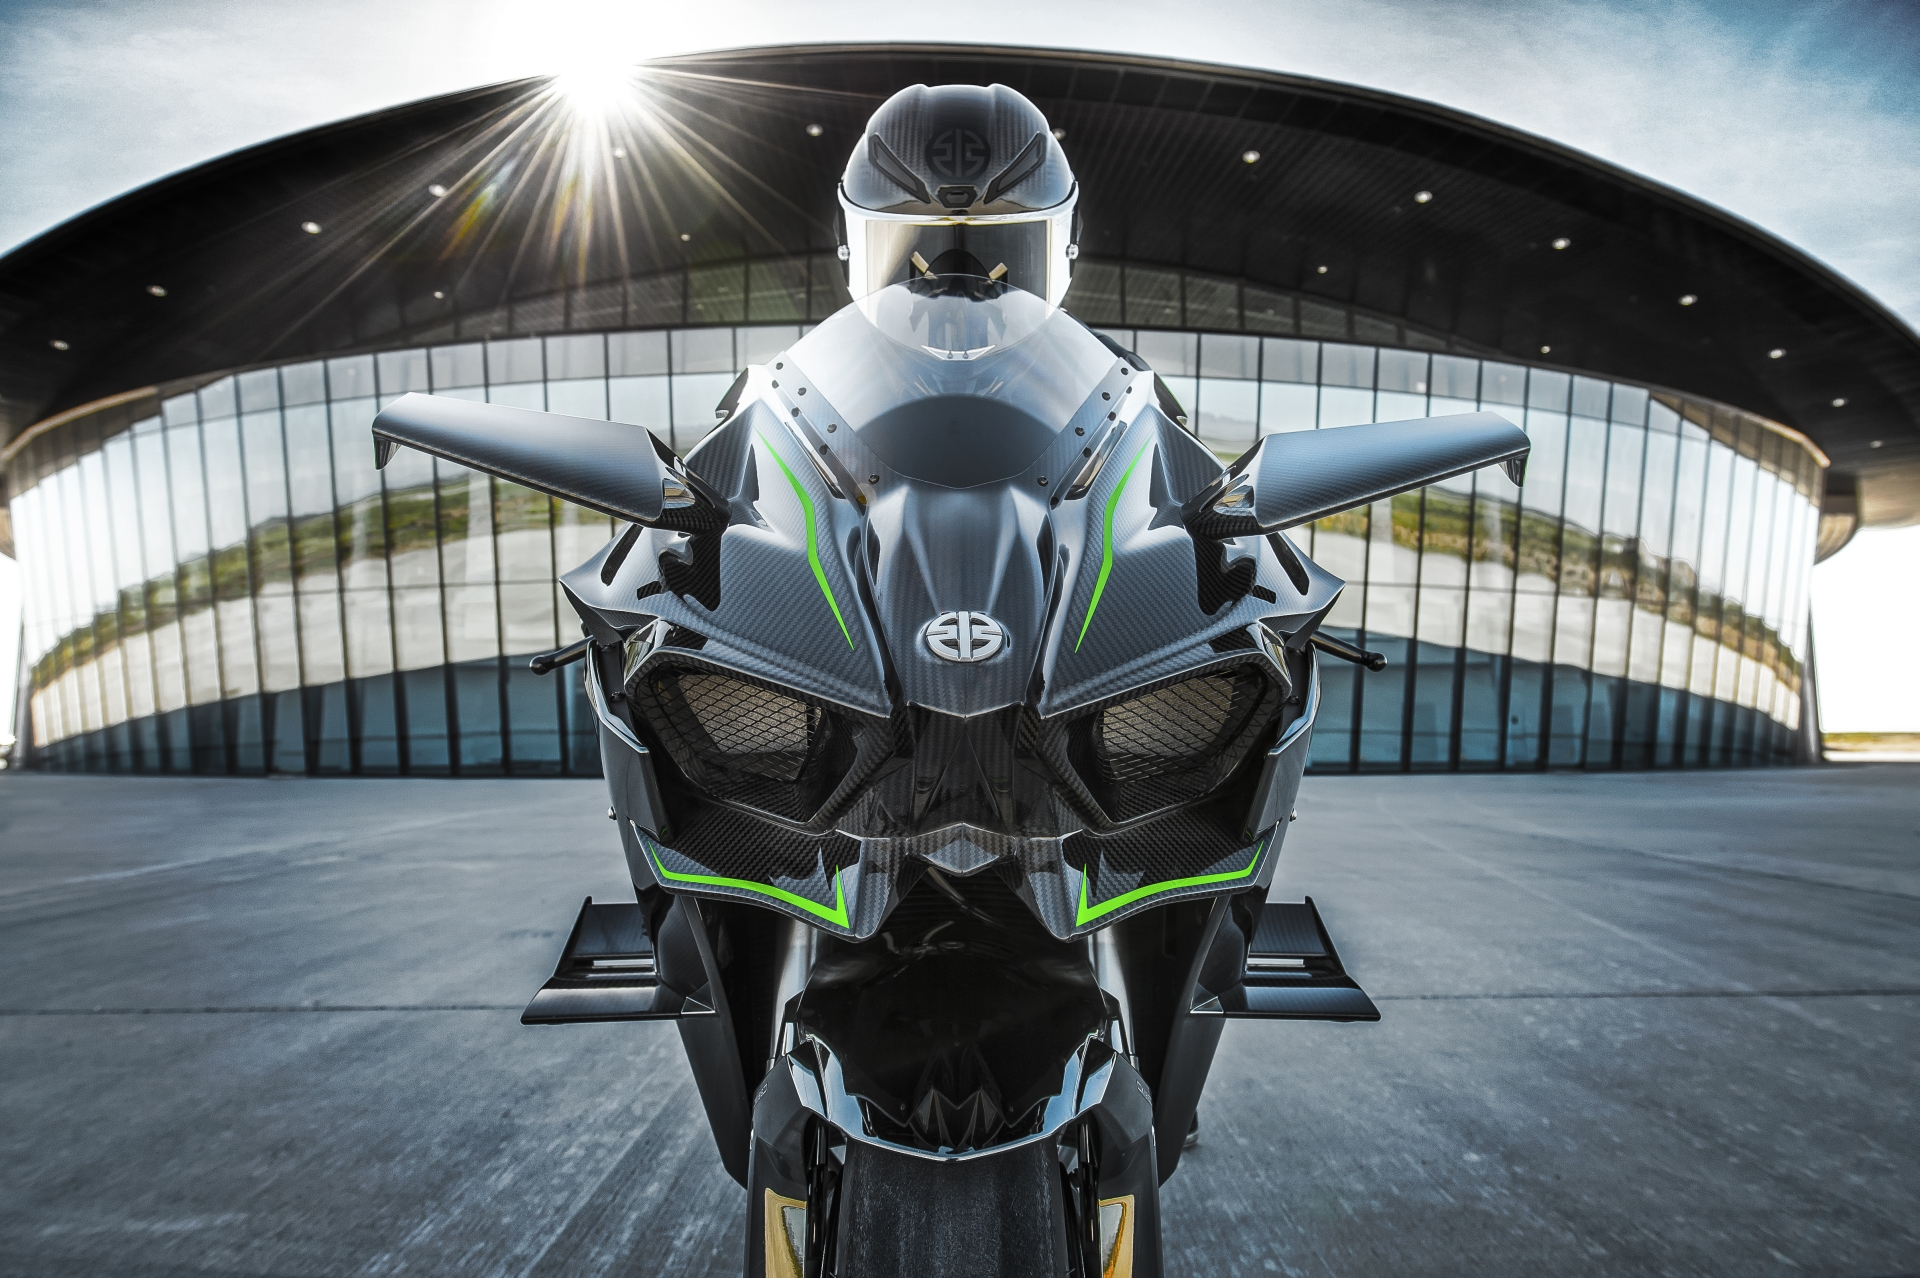 The Kawasaki Ninja H2R Hypersport Motorcycle